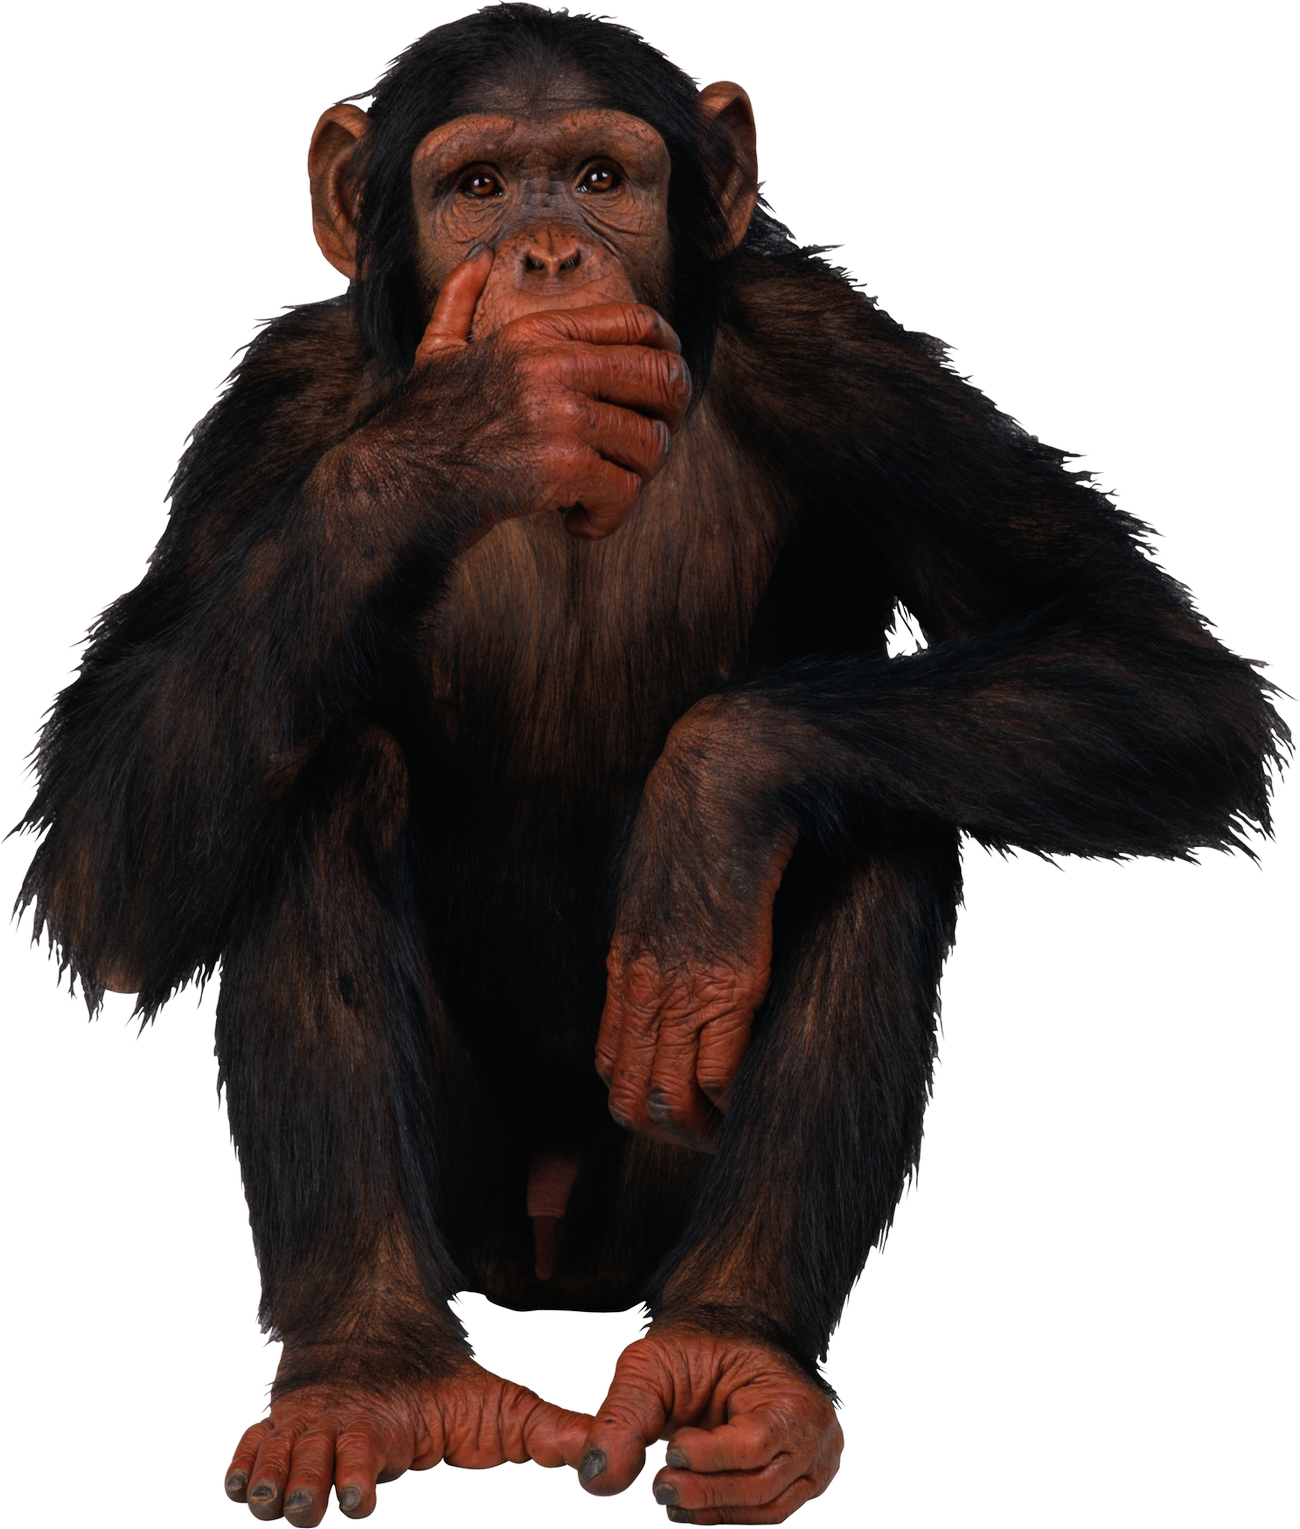 jpg transparent stock Monkey png . Ape clipart monky